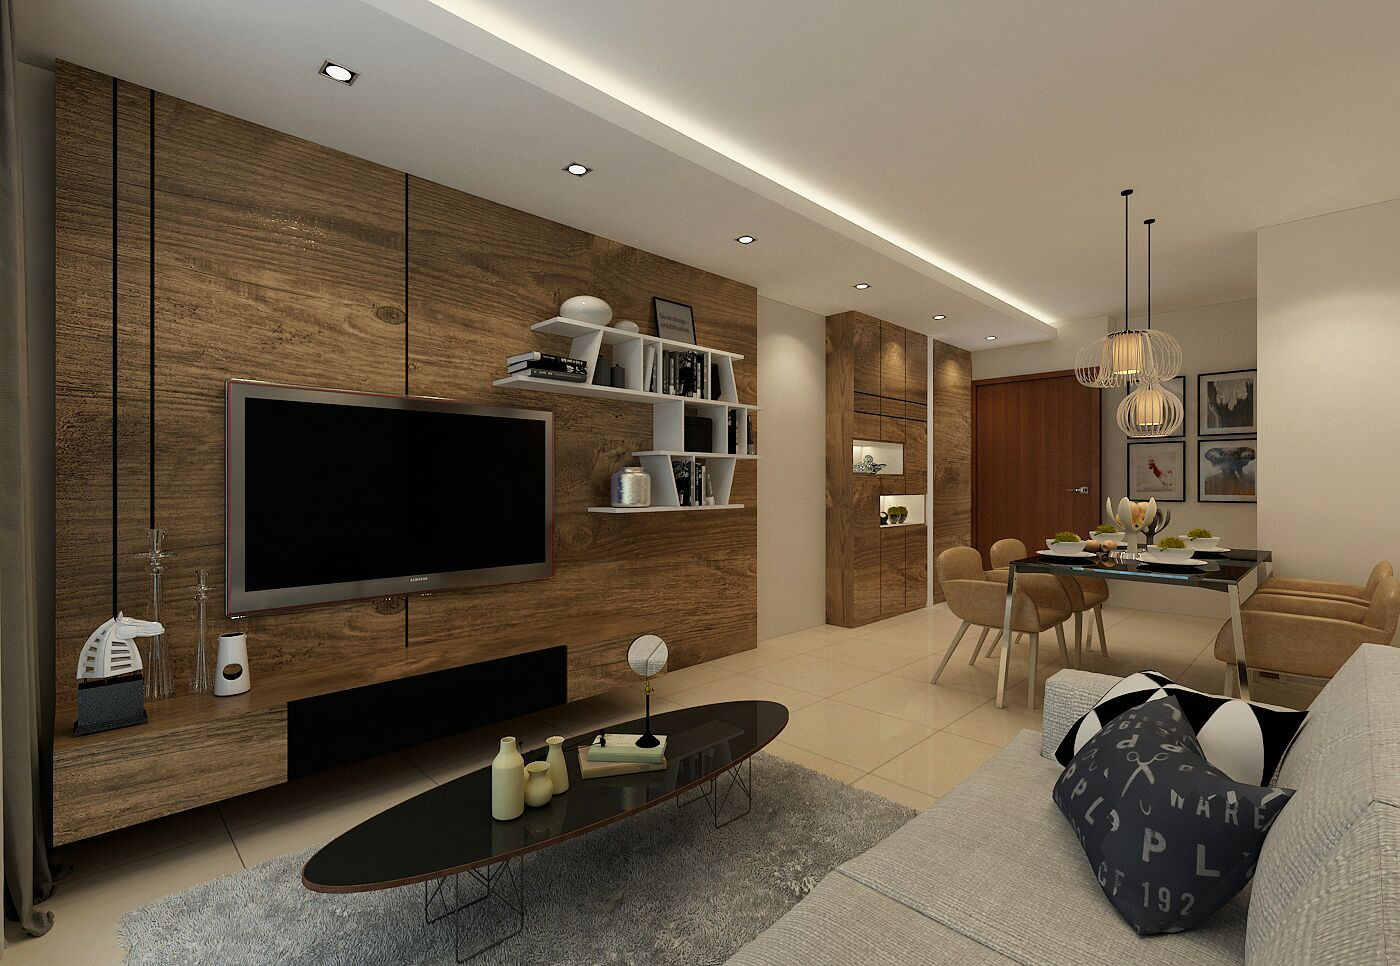 Residential Interior Design Renovation Contractor Singapore Hdb Renovation Contractor In Singapore Interior Design Bedroom Design Home